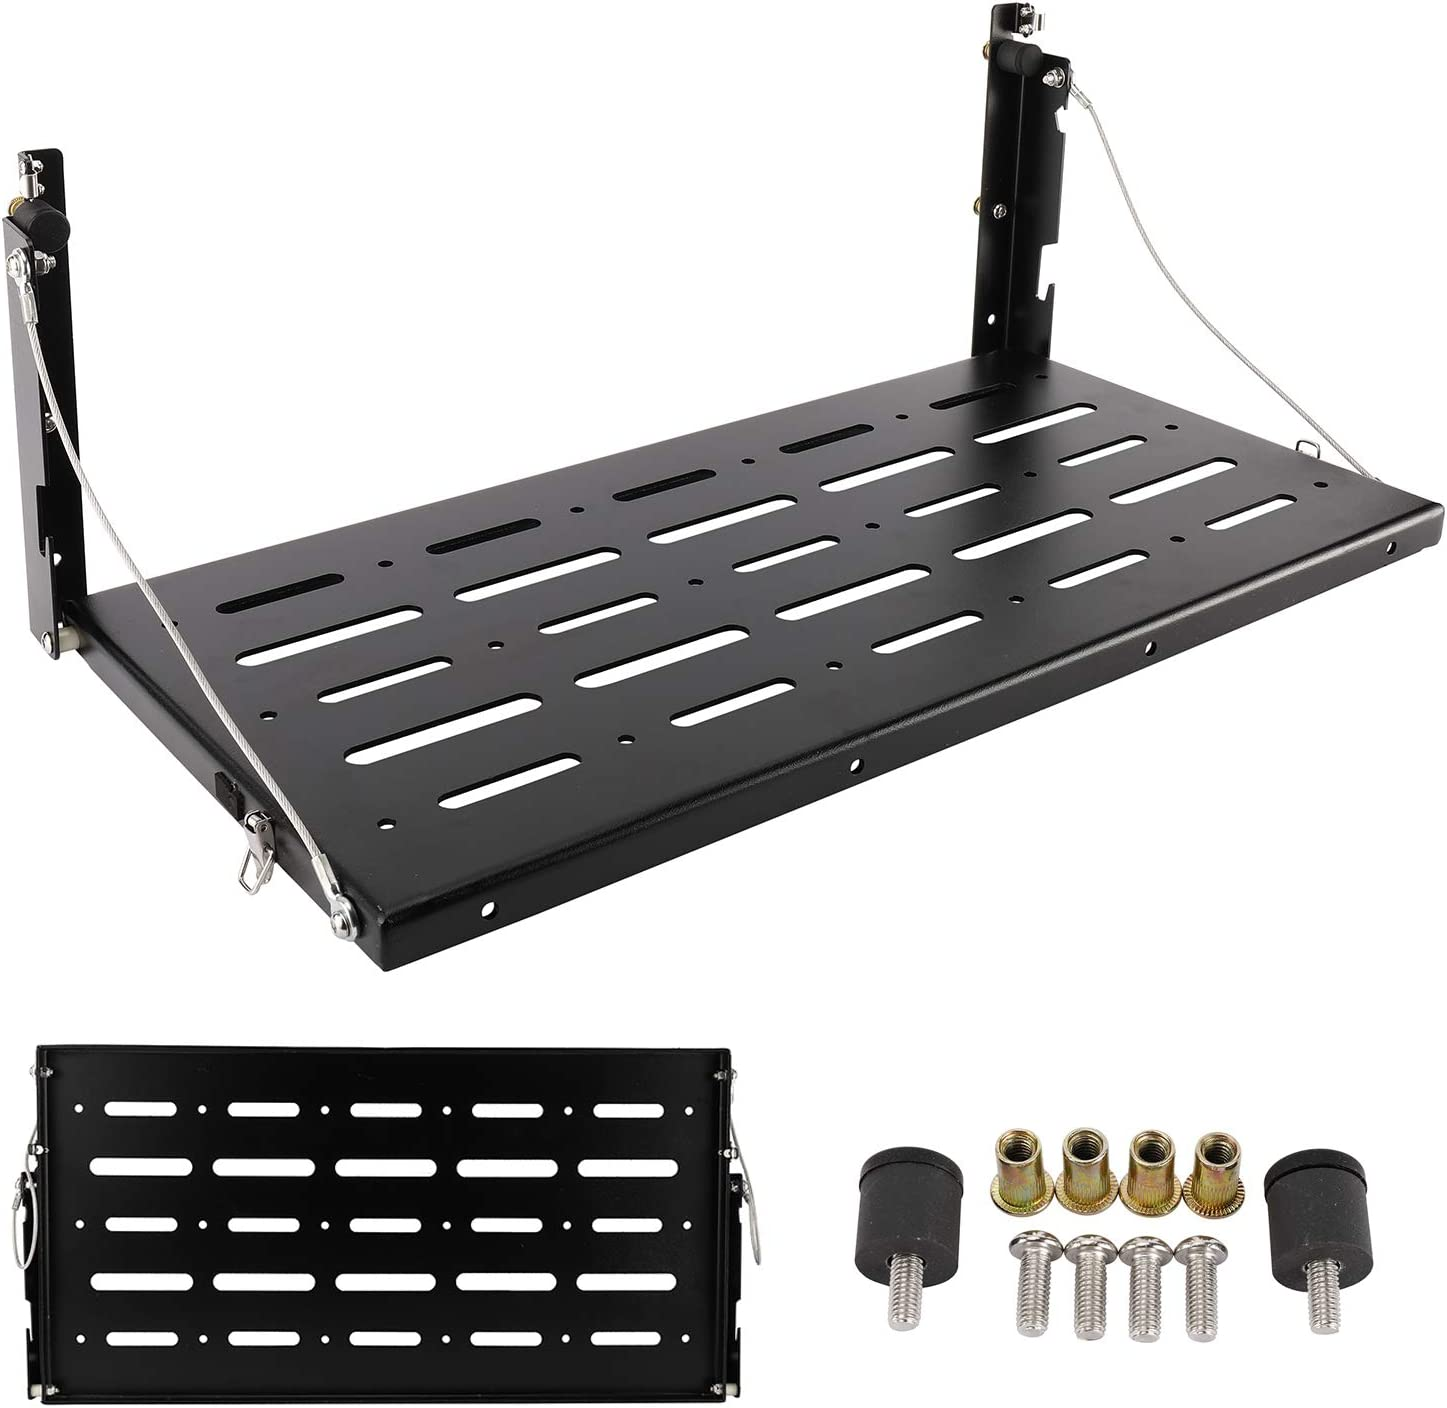 Rear Foldable Back Shelf fit for J-e-e-p Wrangler JK JKU 1996-2017 NiceDD Multi-Purpose Tailgate Table 75lbs//34kg Load Capacity